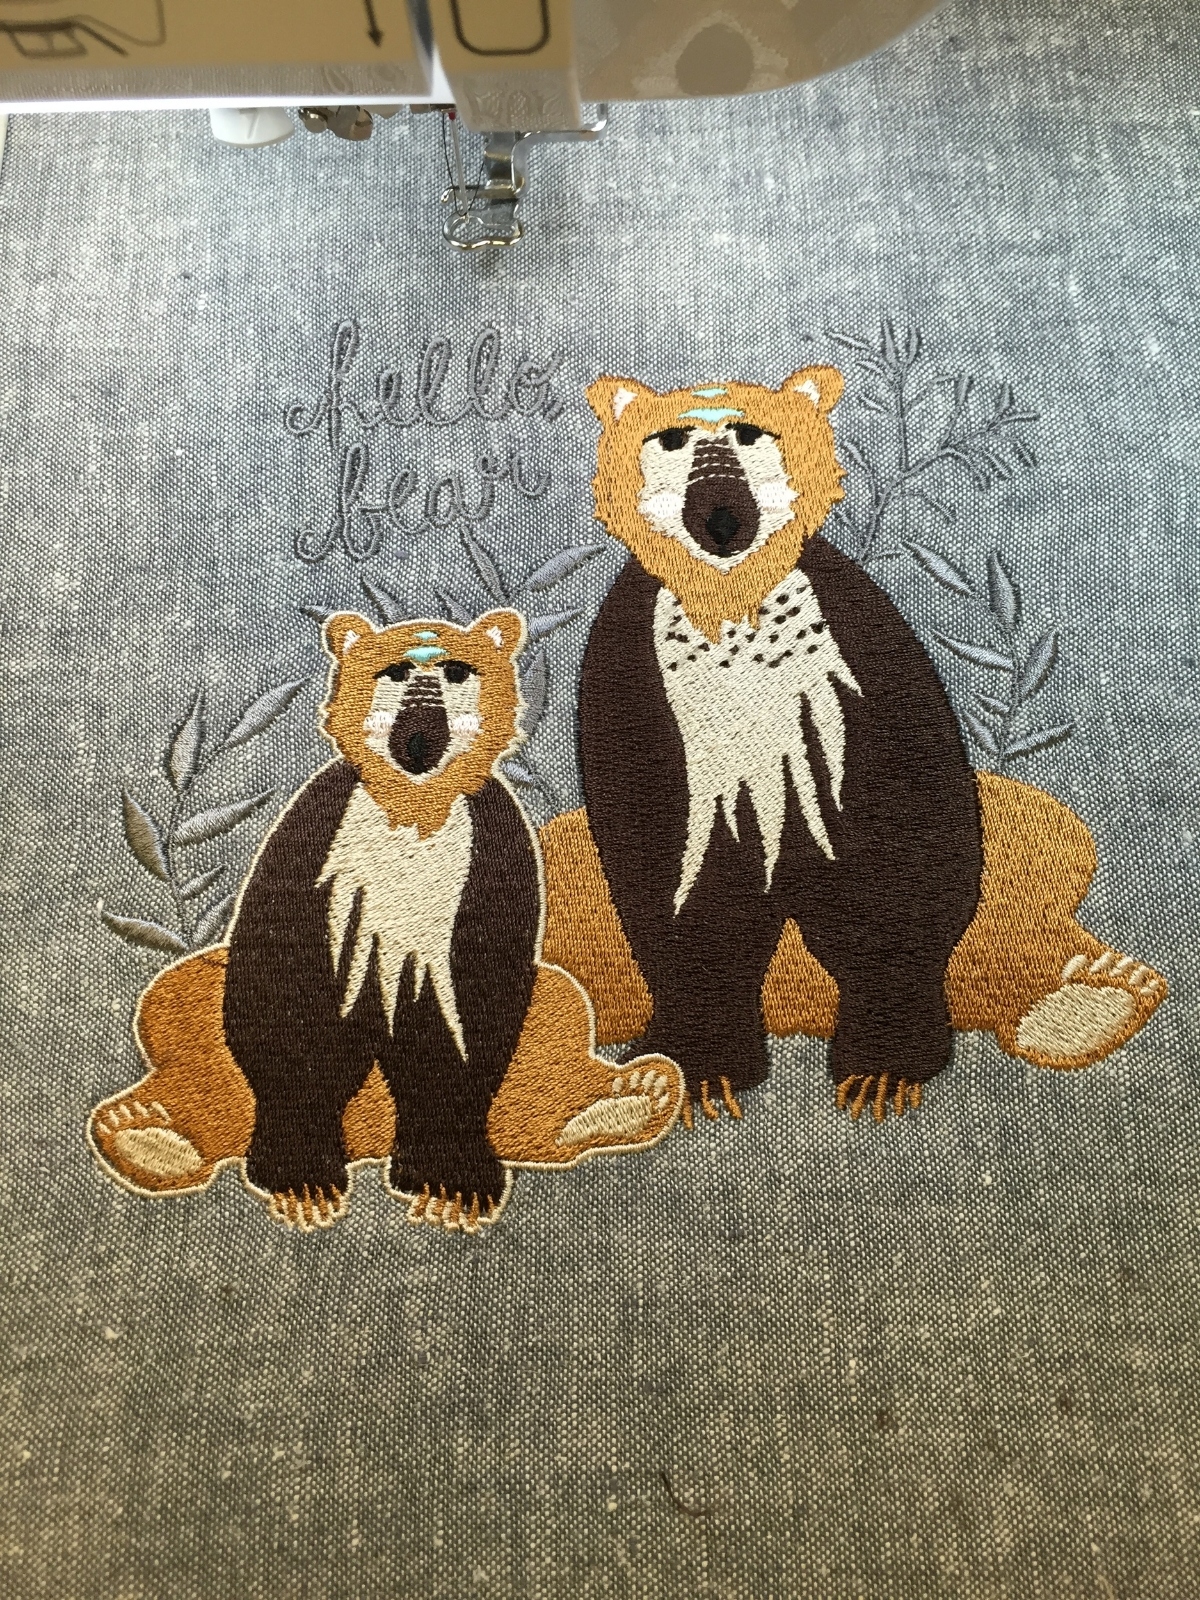 Hello, Bear and my Baby Lock Destiny Sewing/Embroidery Machine